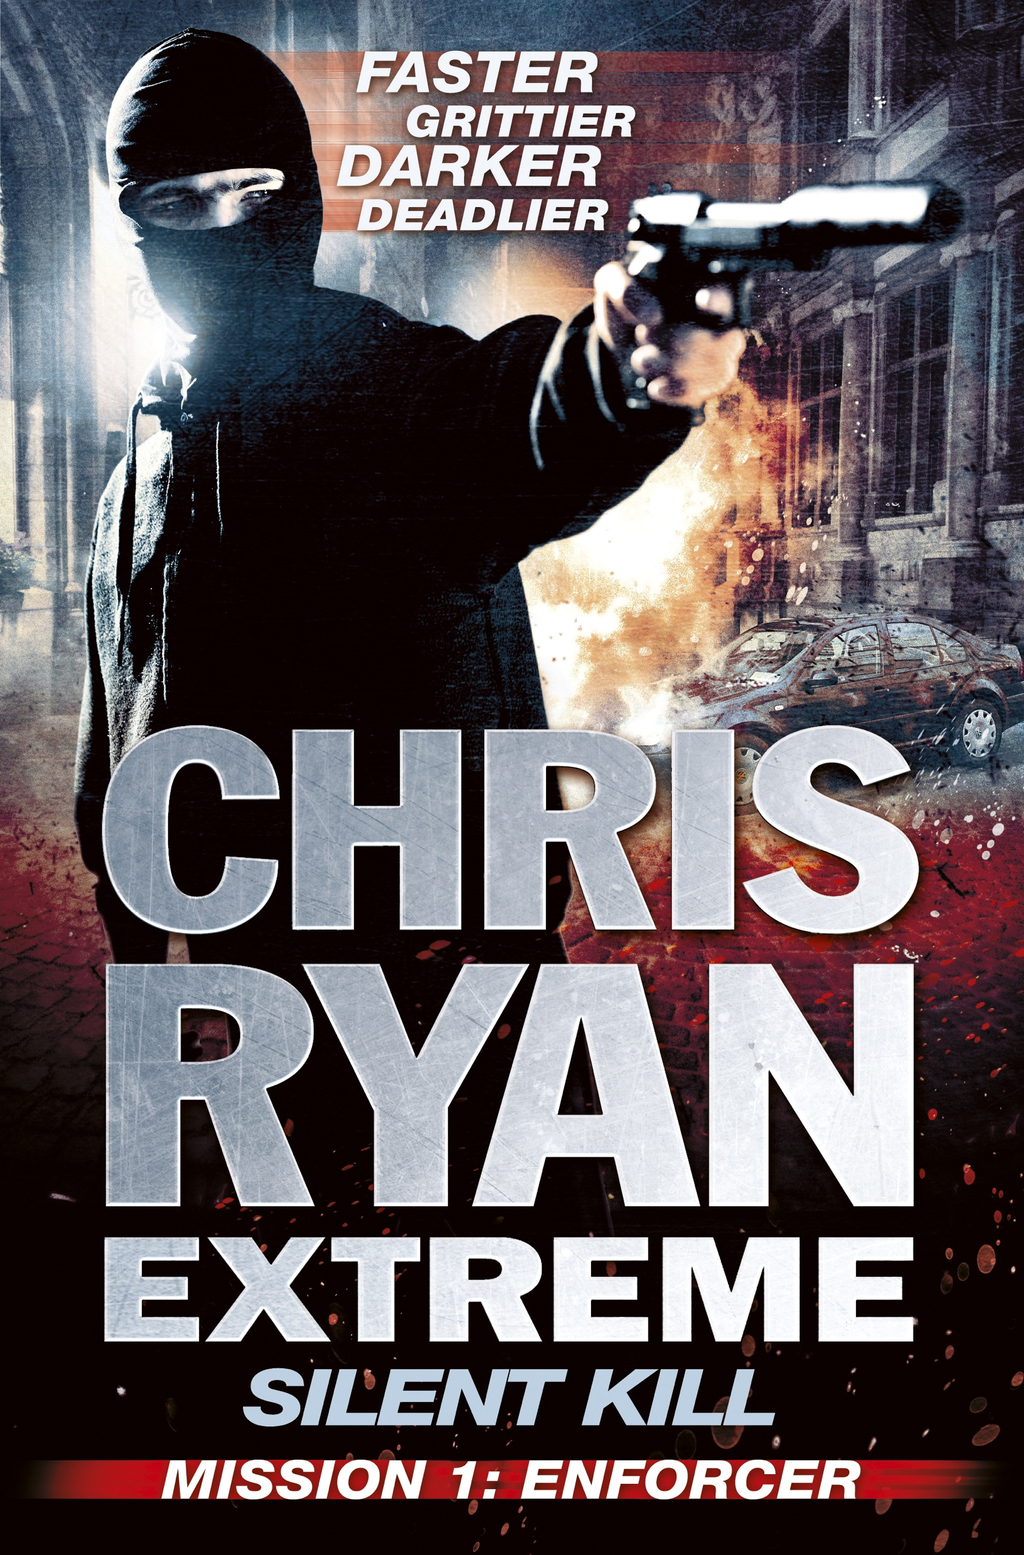 Silent Kill Mission 1 Chris Ryan Extreme: Series 4